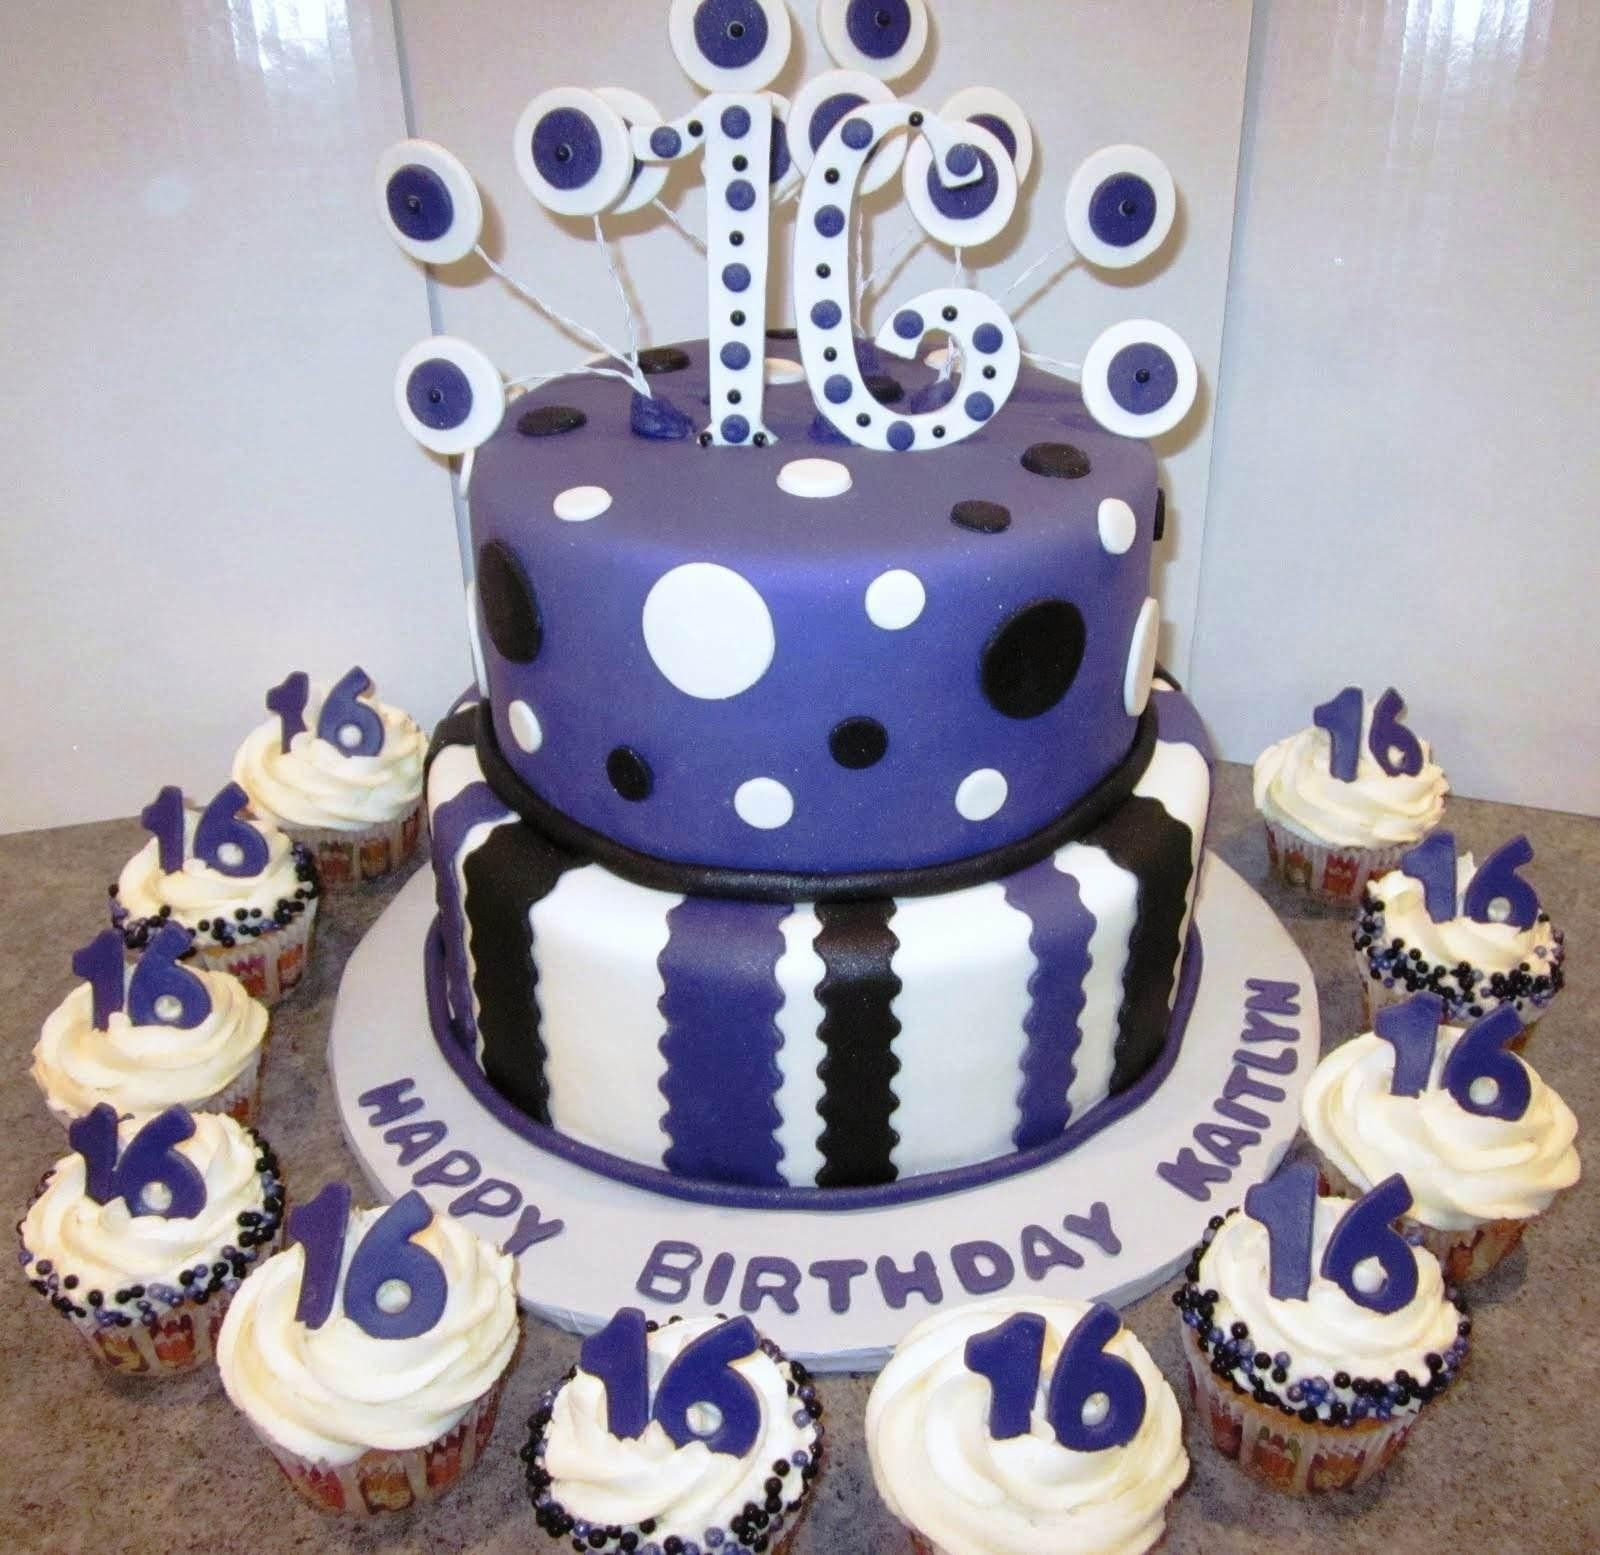 10 Famous Ideas For 16Th Birthday Boy 16th birthday cake toppers 1600x1555 boys 16th birthday 6